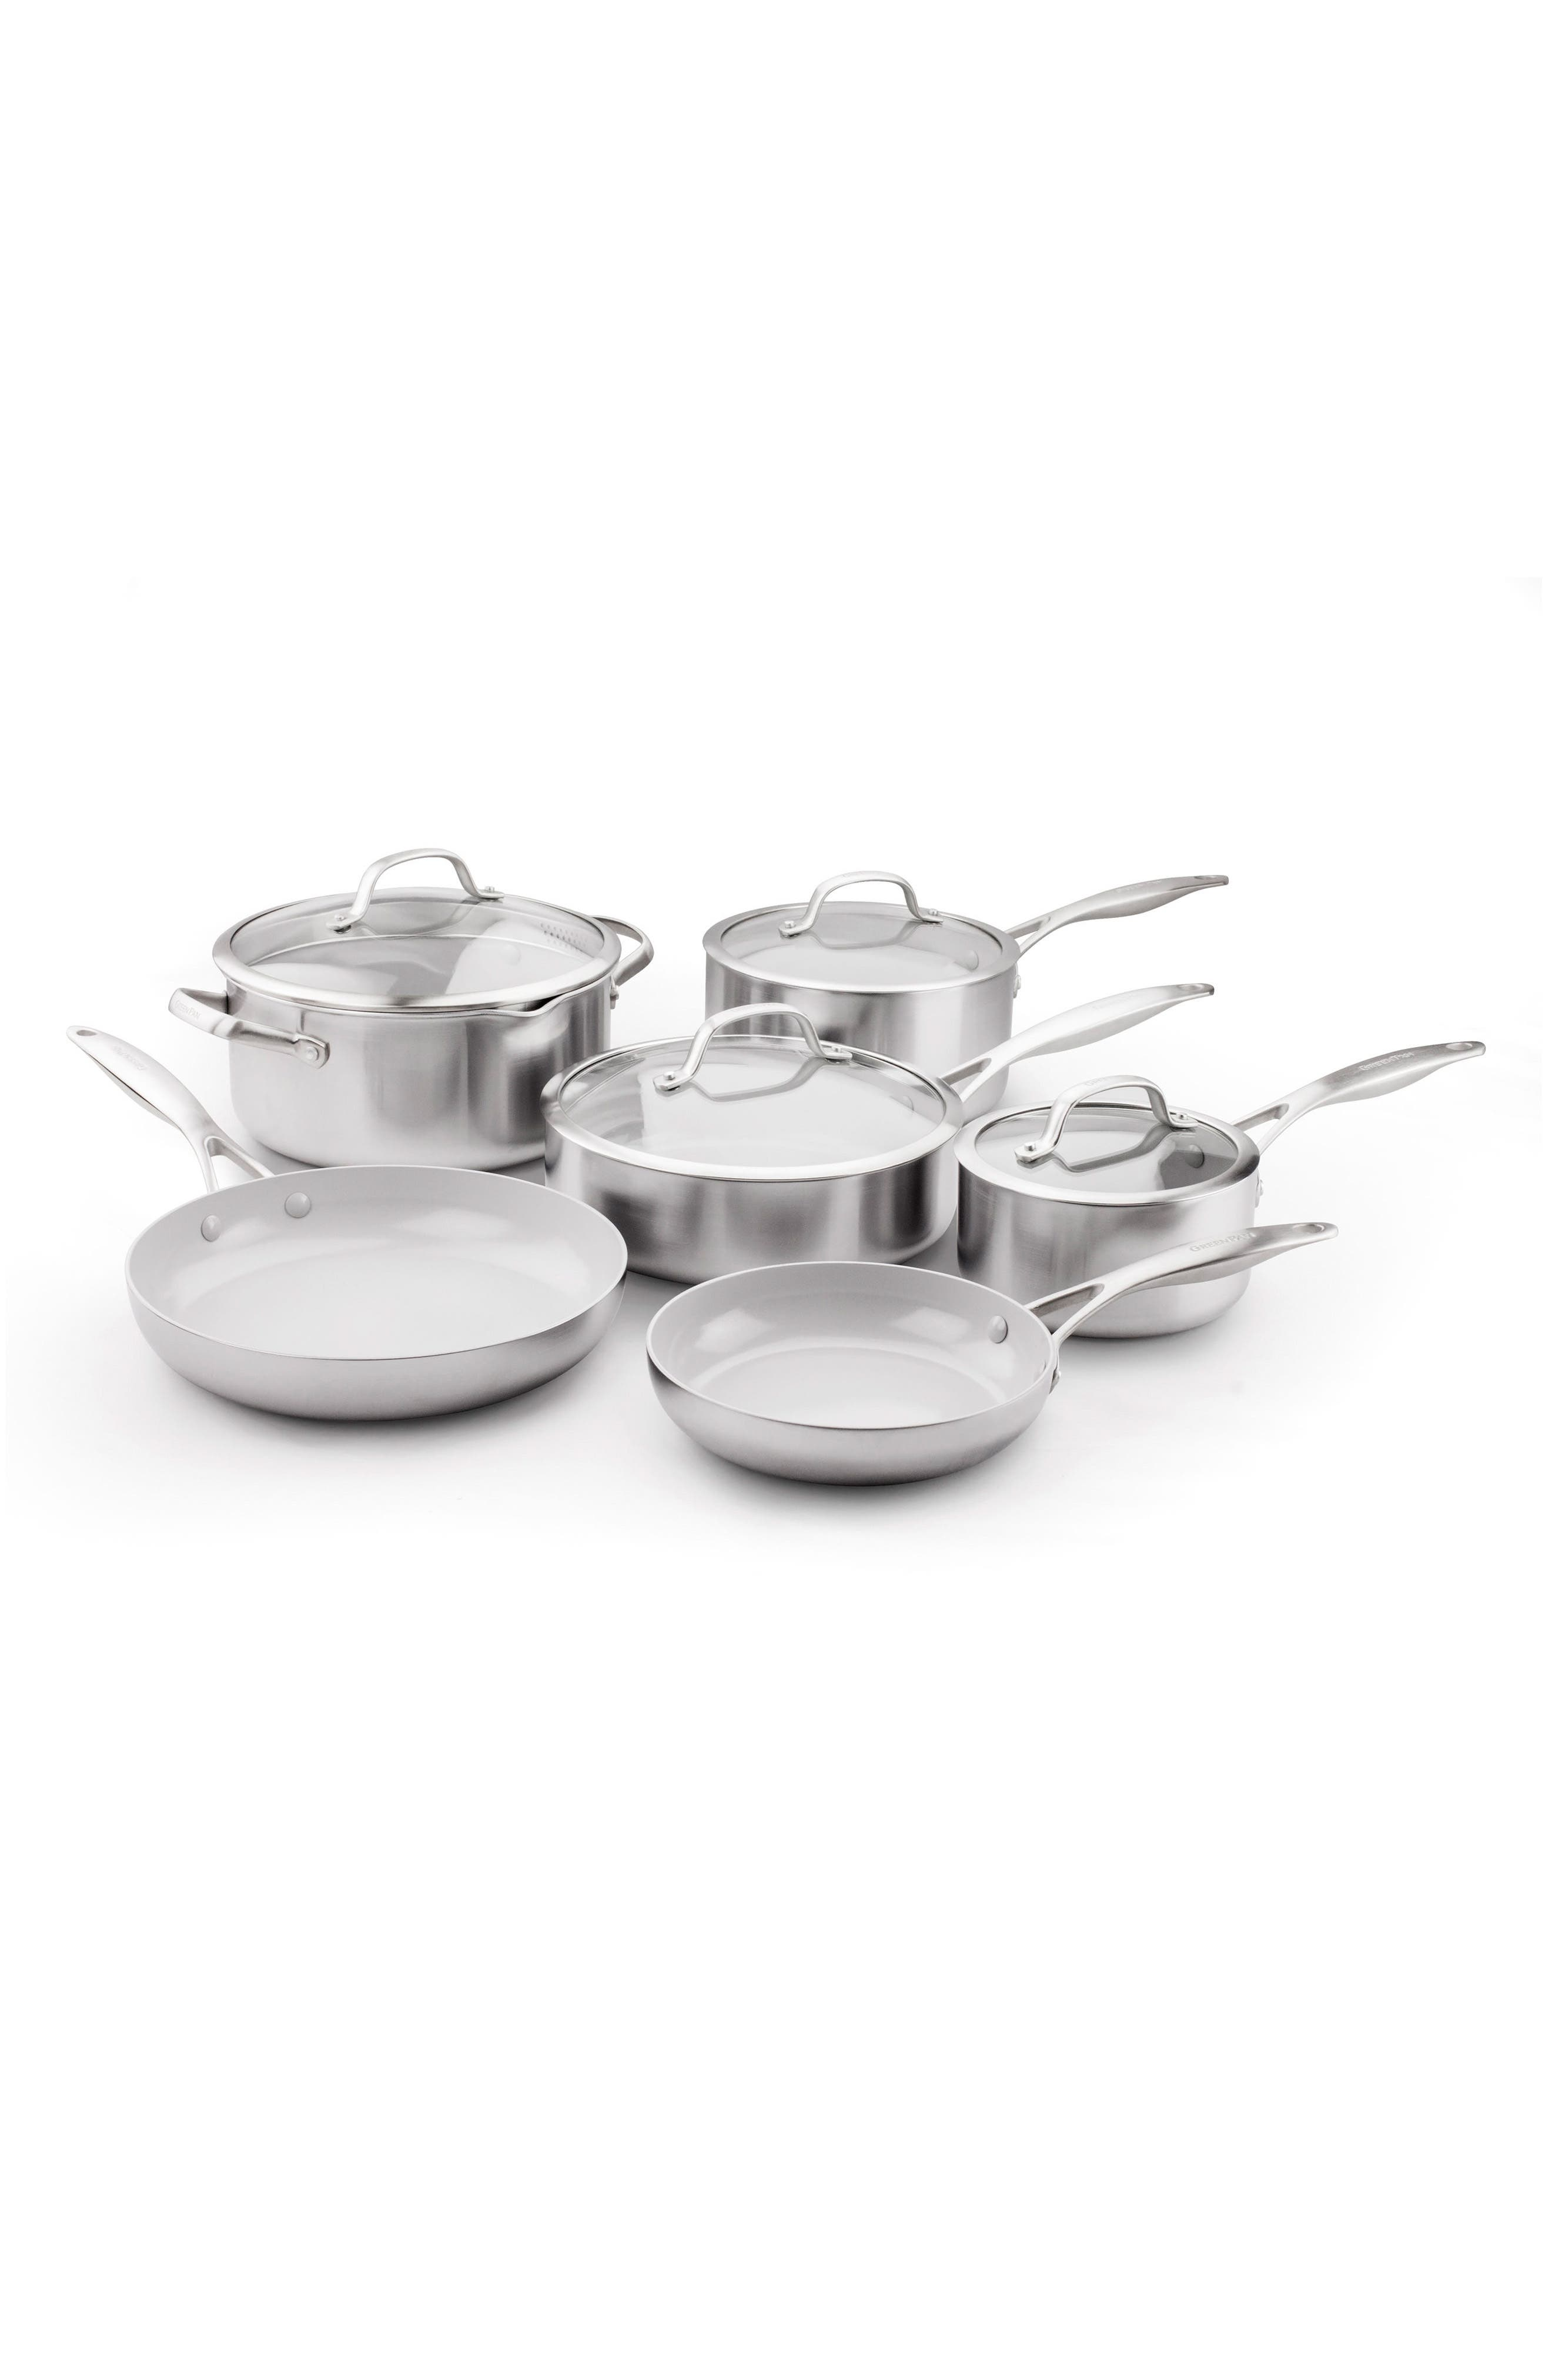 GREENPAN Venice Pro 10-Piece Multilayer Stainless Steel Ceramic Nonstick Cookware Set, Main, color, STAINLESS STEEL